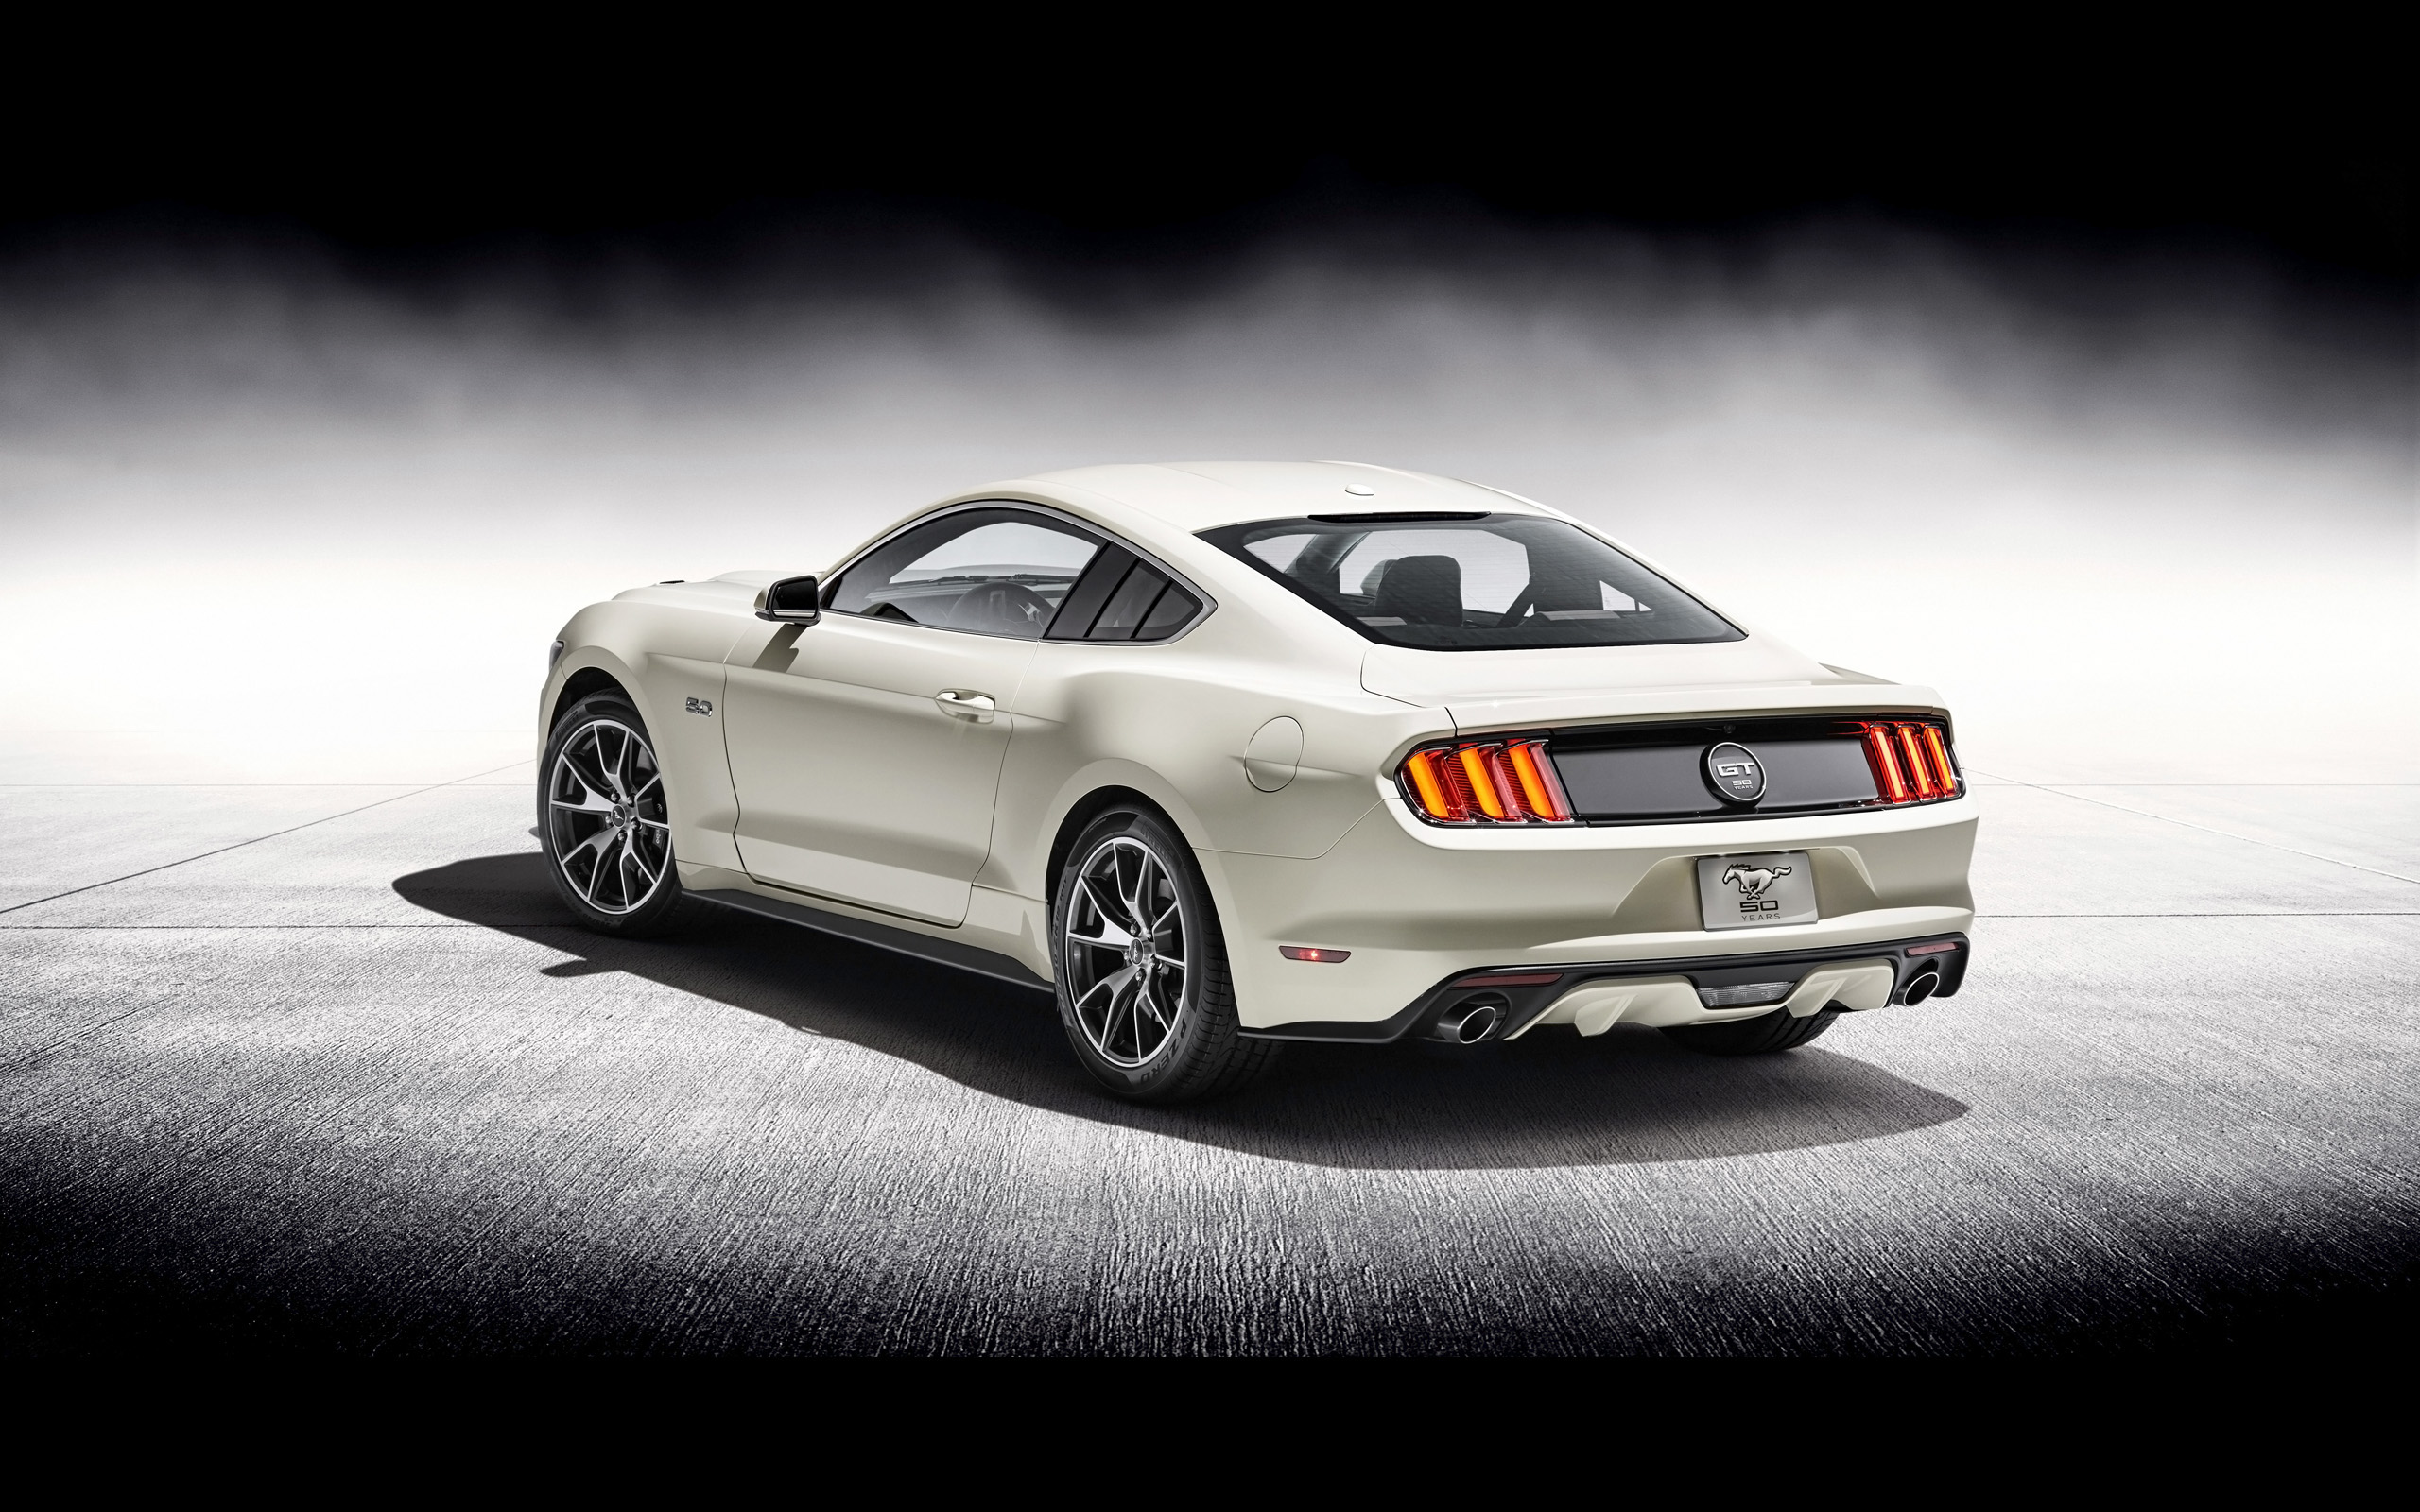 2015 Ford Mustang Gt Fastback 50 Year Limited Edition 2